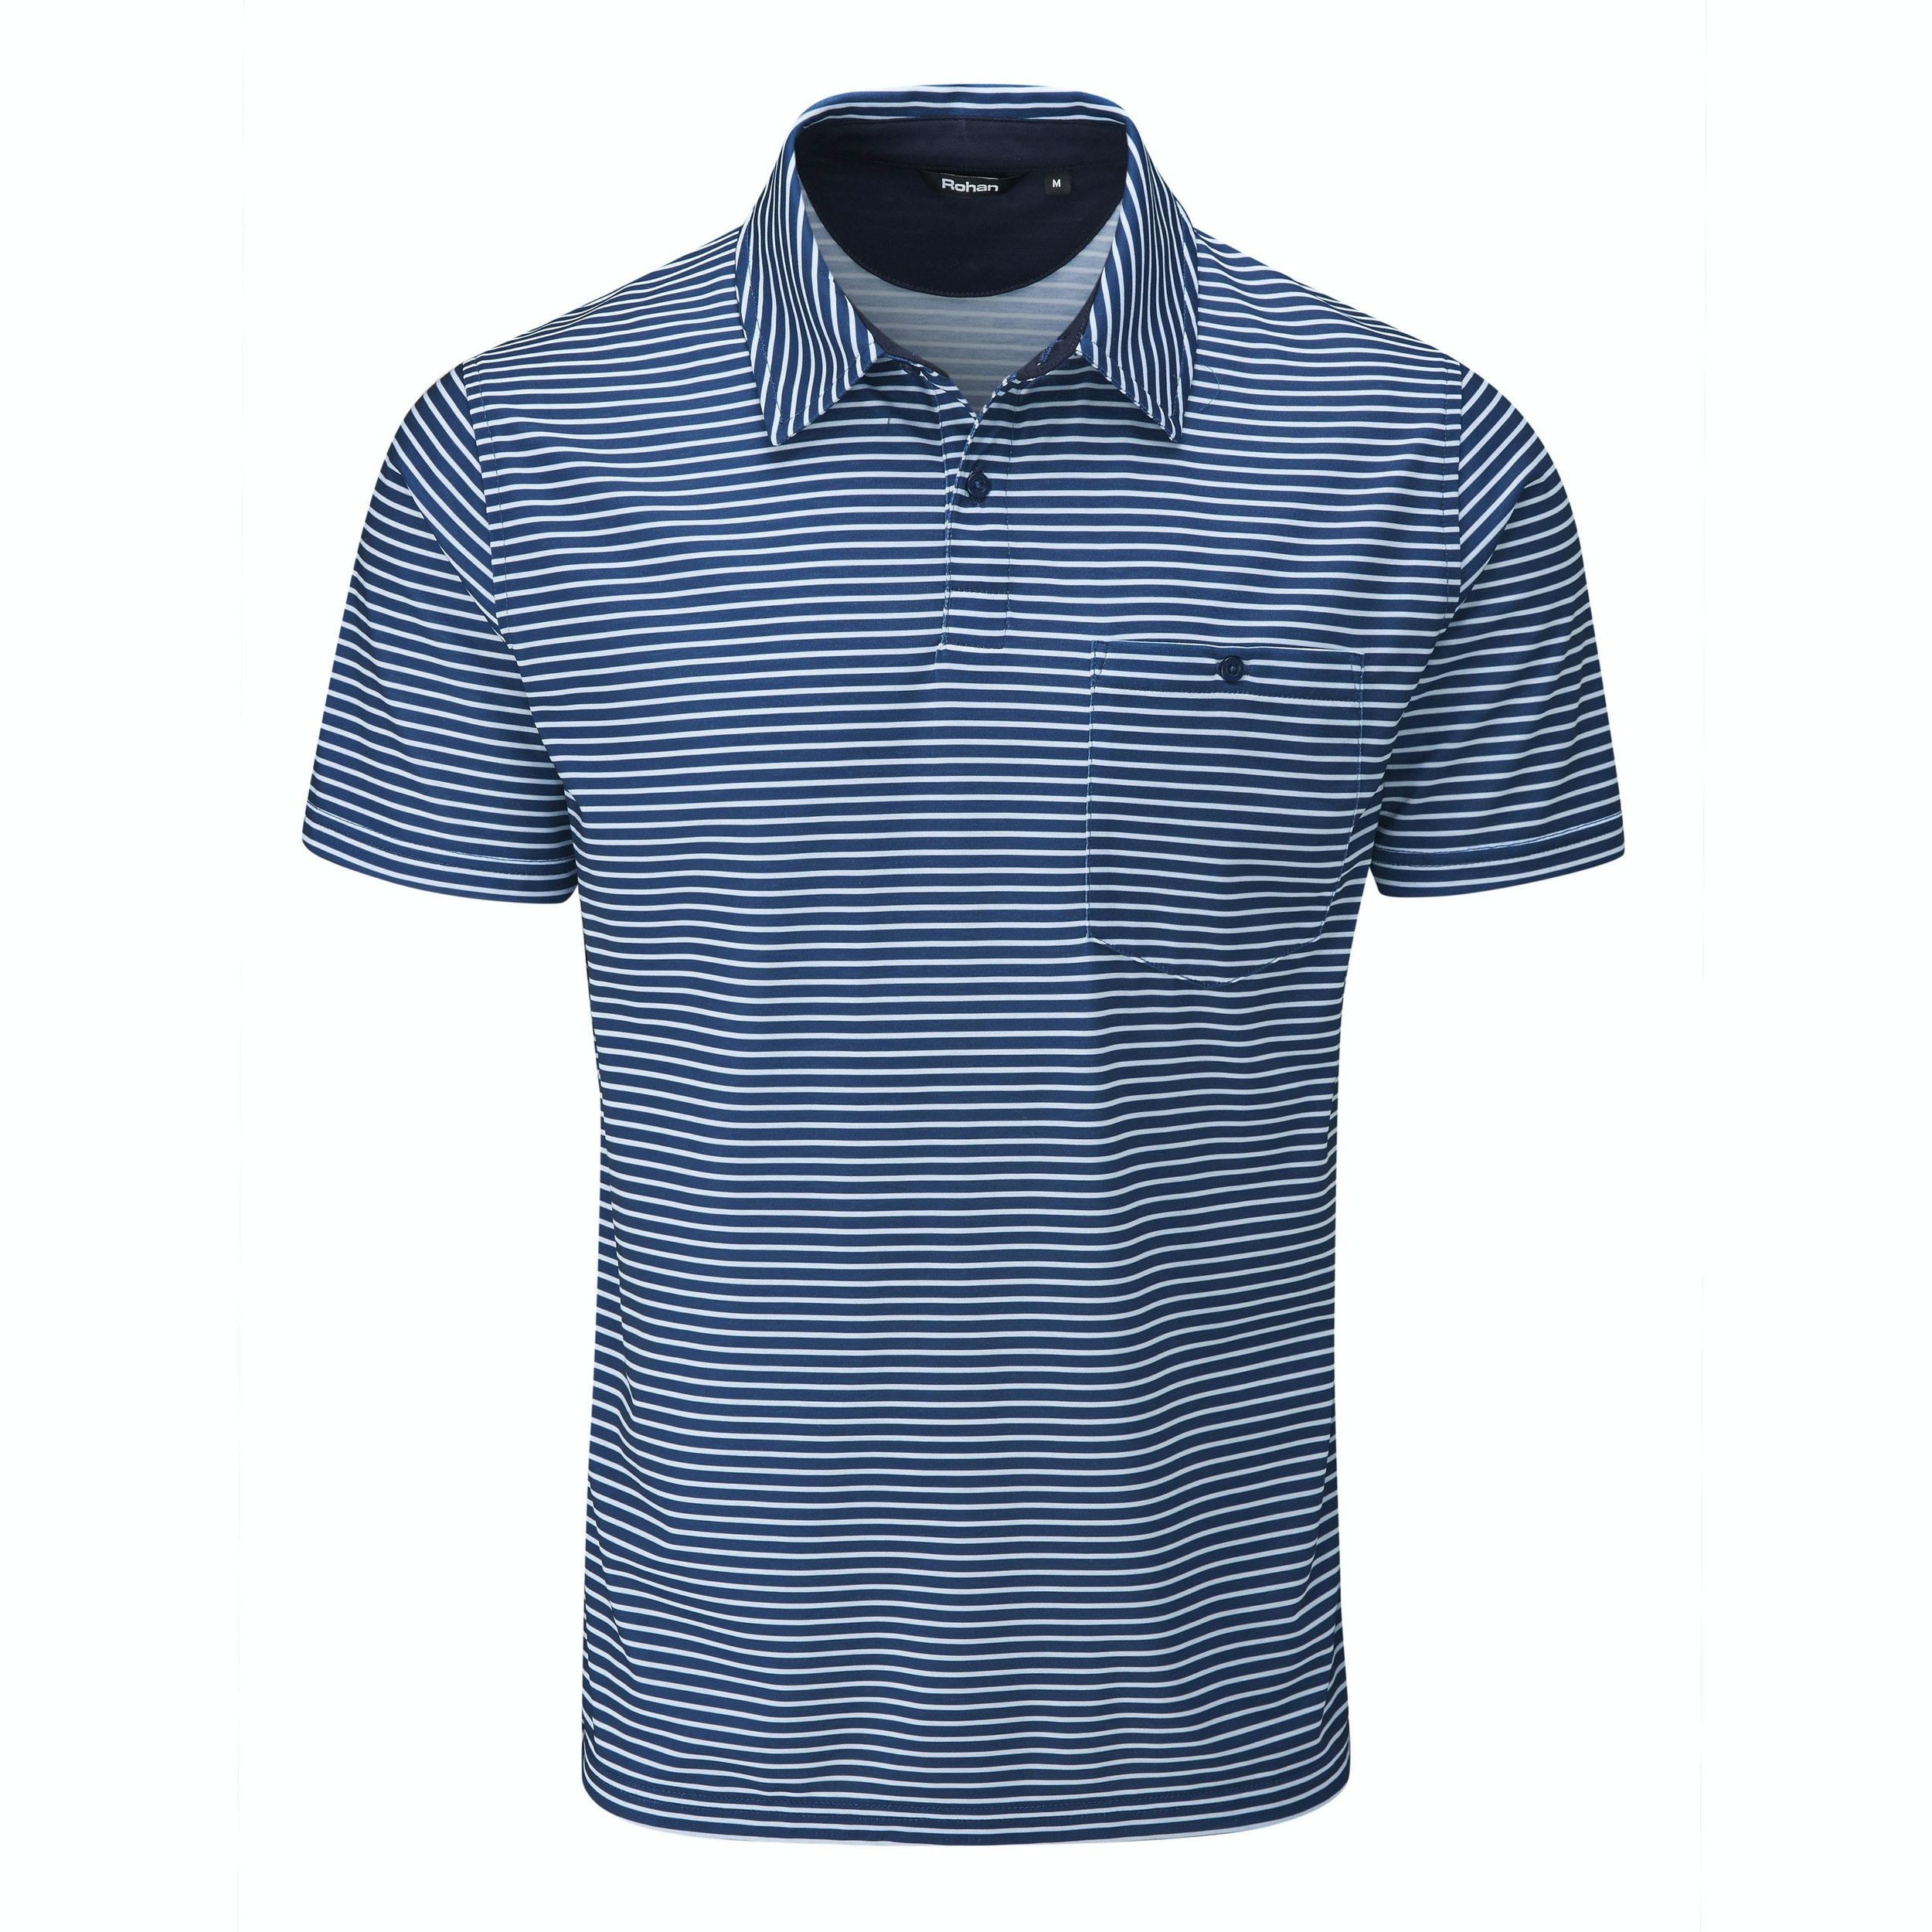 bcd7cae30 Men's Strata Polo - Technical, high-wicking, everyday polo.